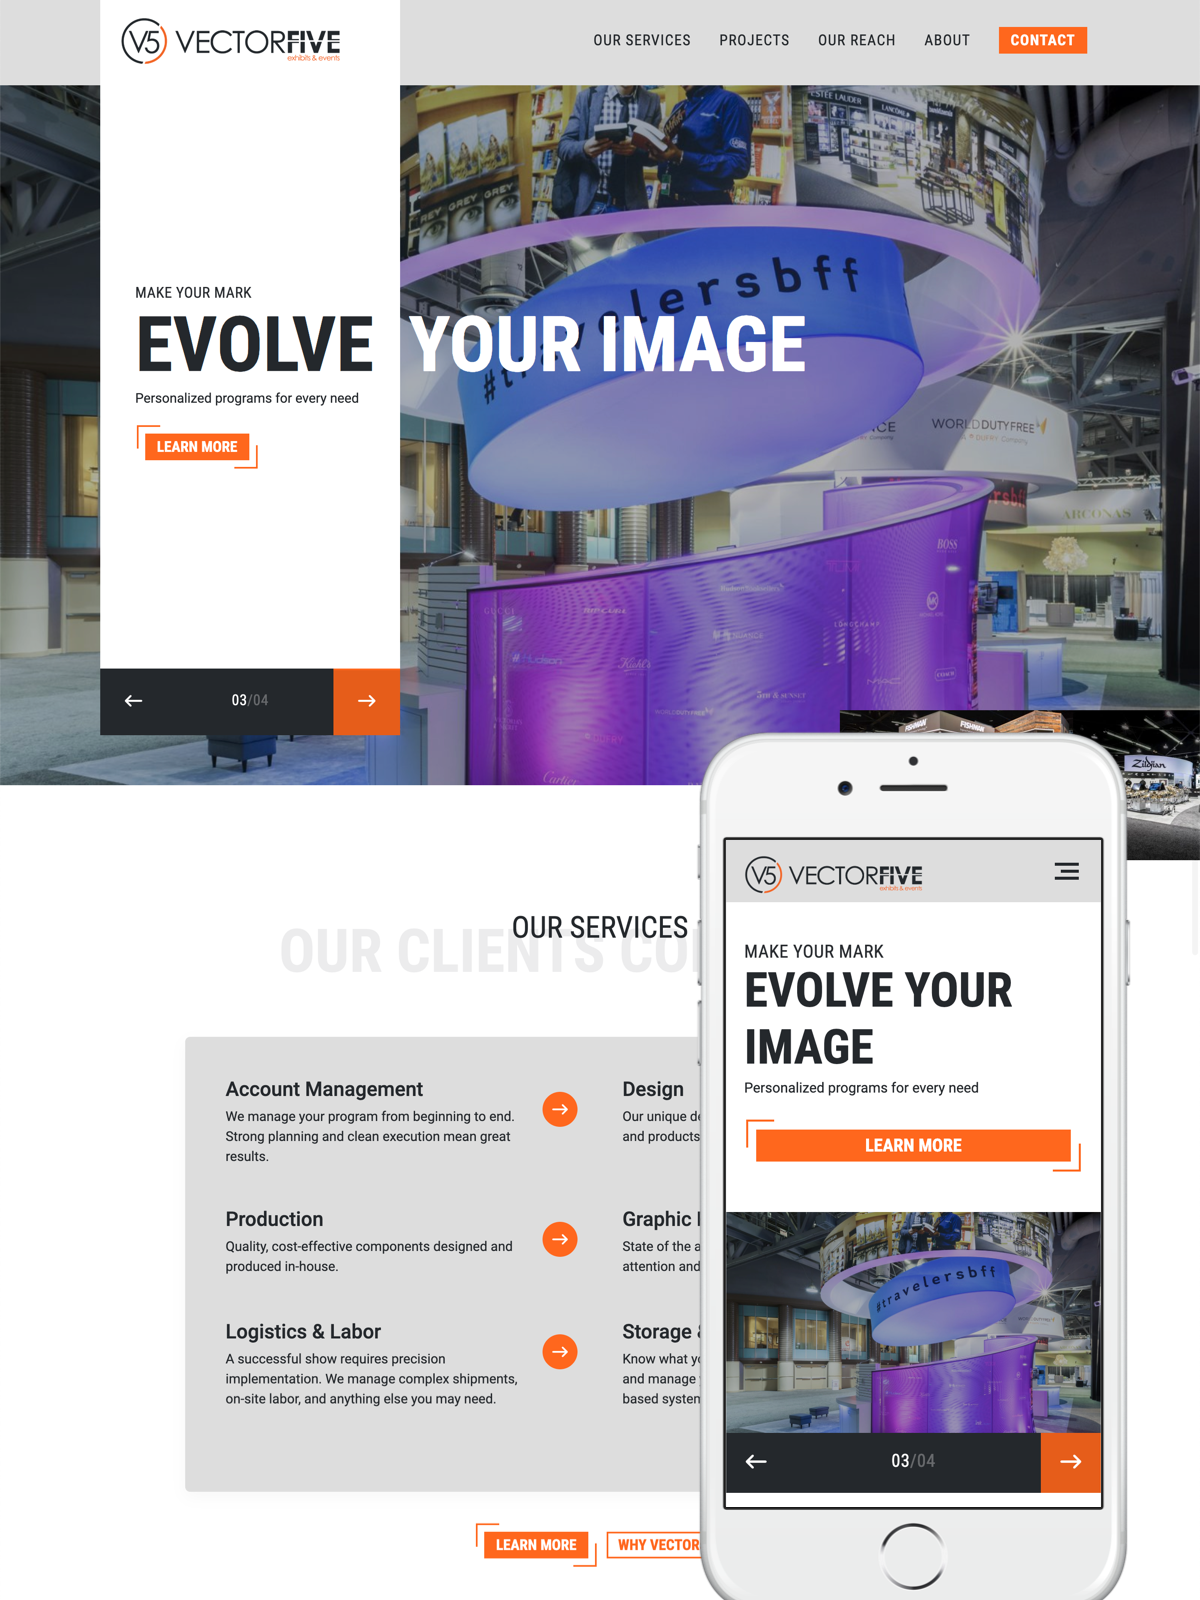 Vector Five homepage design on desktop and mobile